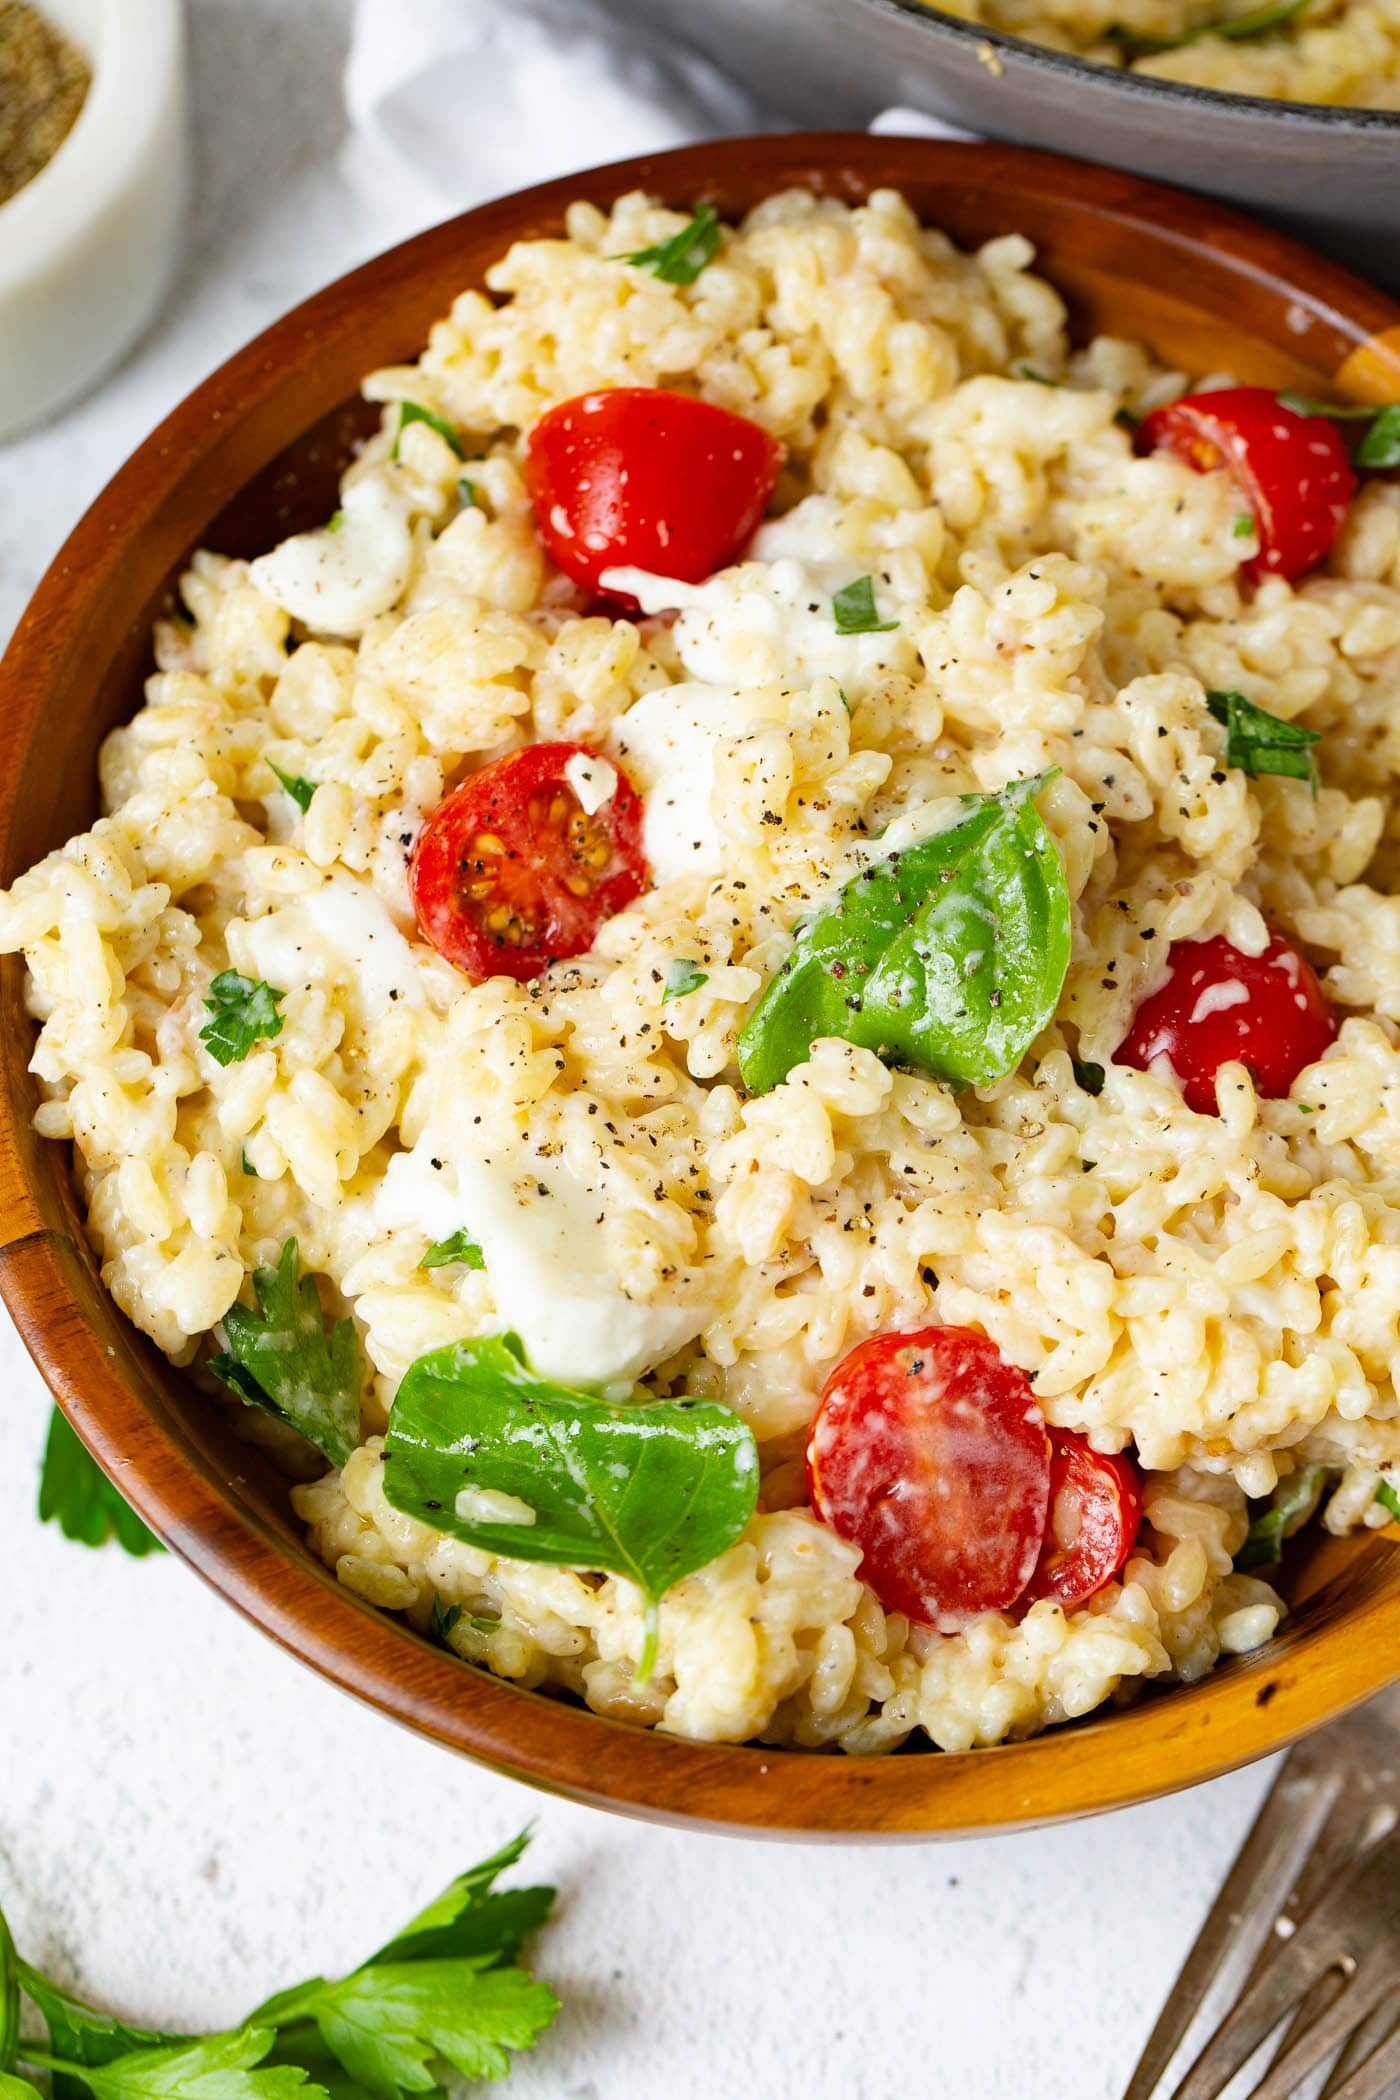 A bowl of caprese orzo salad with fresh tomatoes, mozzarella chunks and fresh basil. A few basil leaves are on the table next to the pasta.